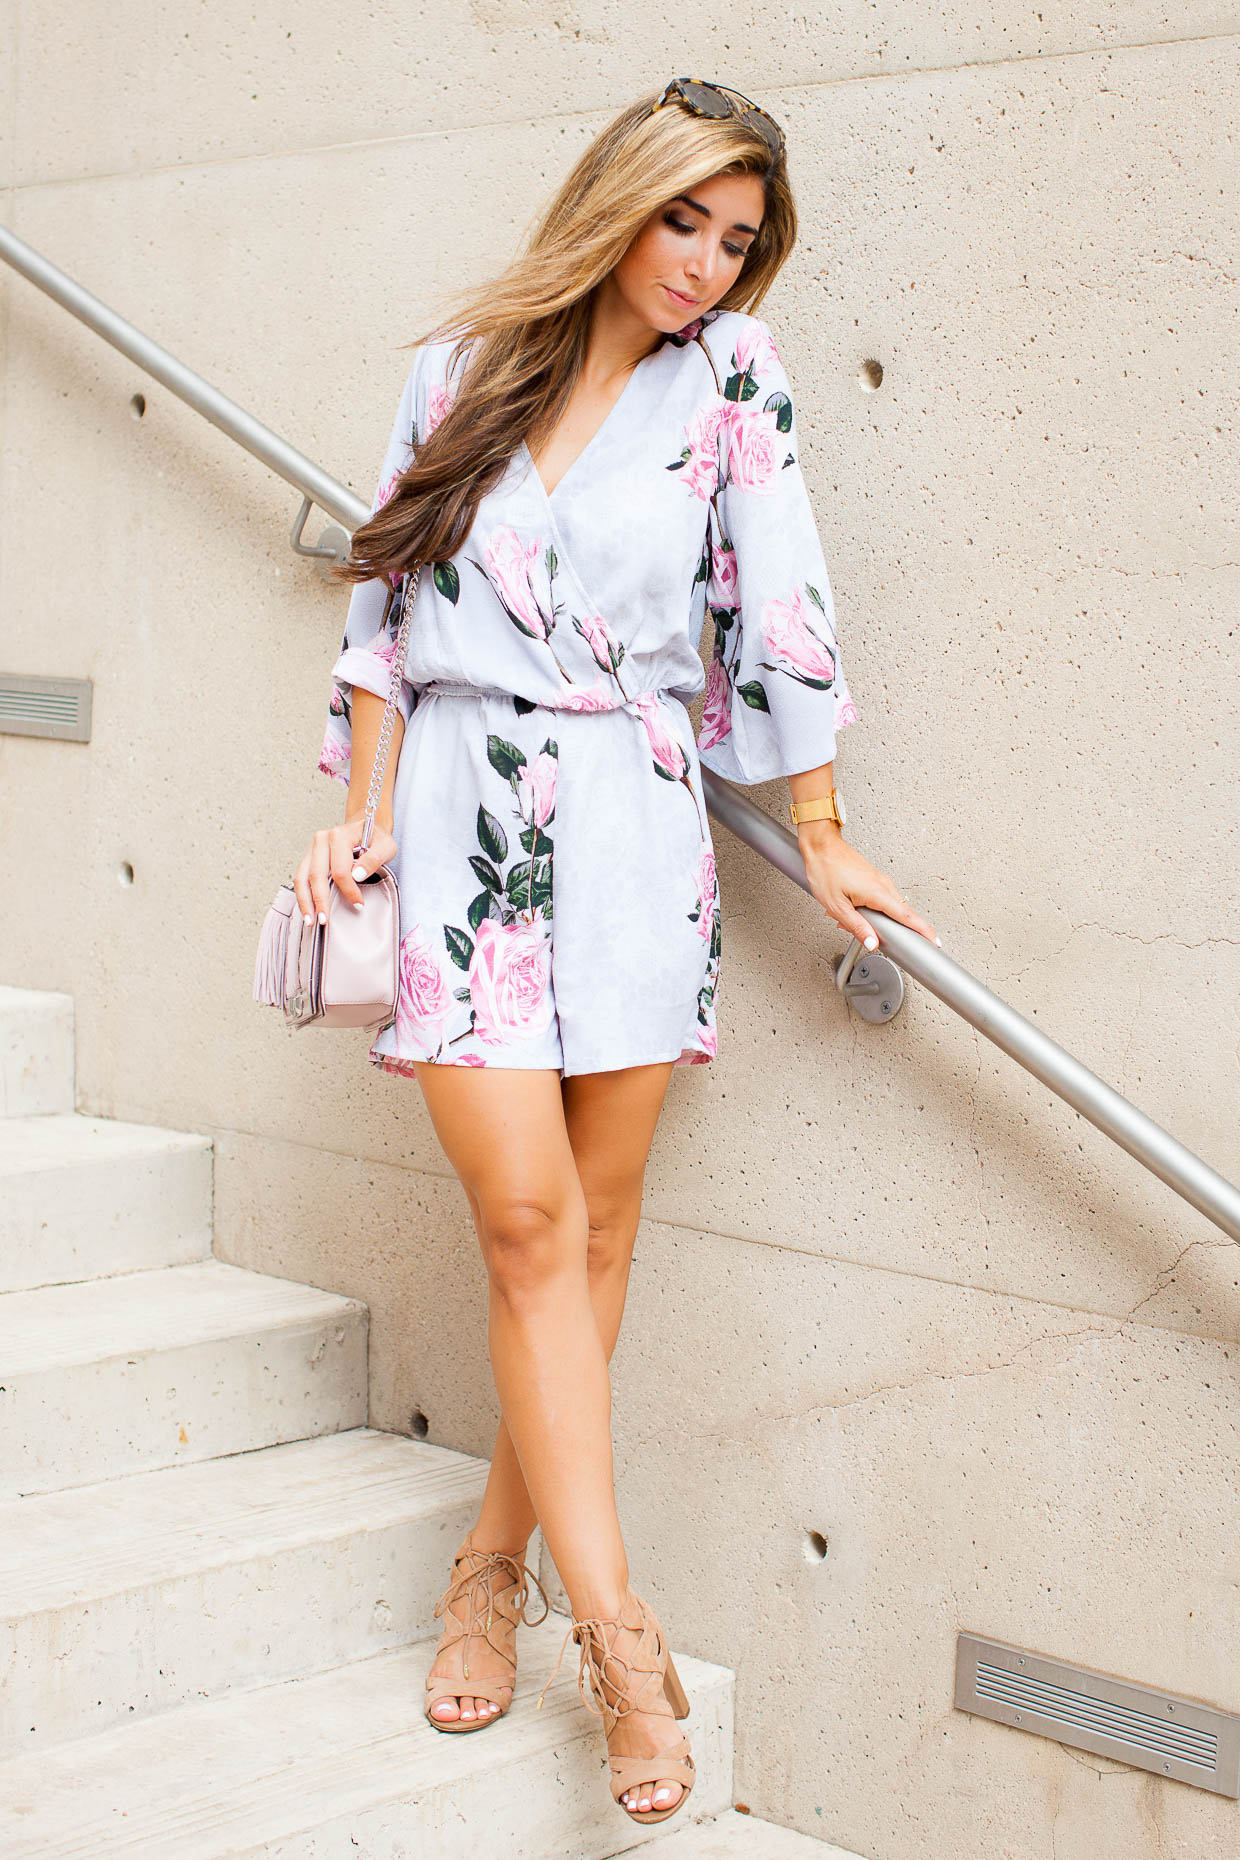 Fashion Blogger The Darling Detail is wearing a Glamorous Floral Lace Kimono Romper, Sam Edelman 'Yardley' Lace-Up Sandals, Westward Leaning Flower 1 Sunglasses, a Larsson & Jennings 'Lugano' Mesh Strap Watch, and is carrying a Rebecca Minkoff 'Love' Crossbody Bag.